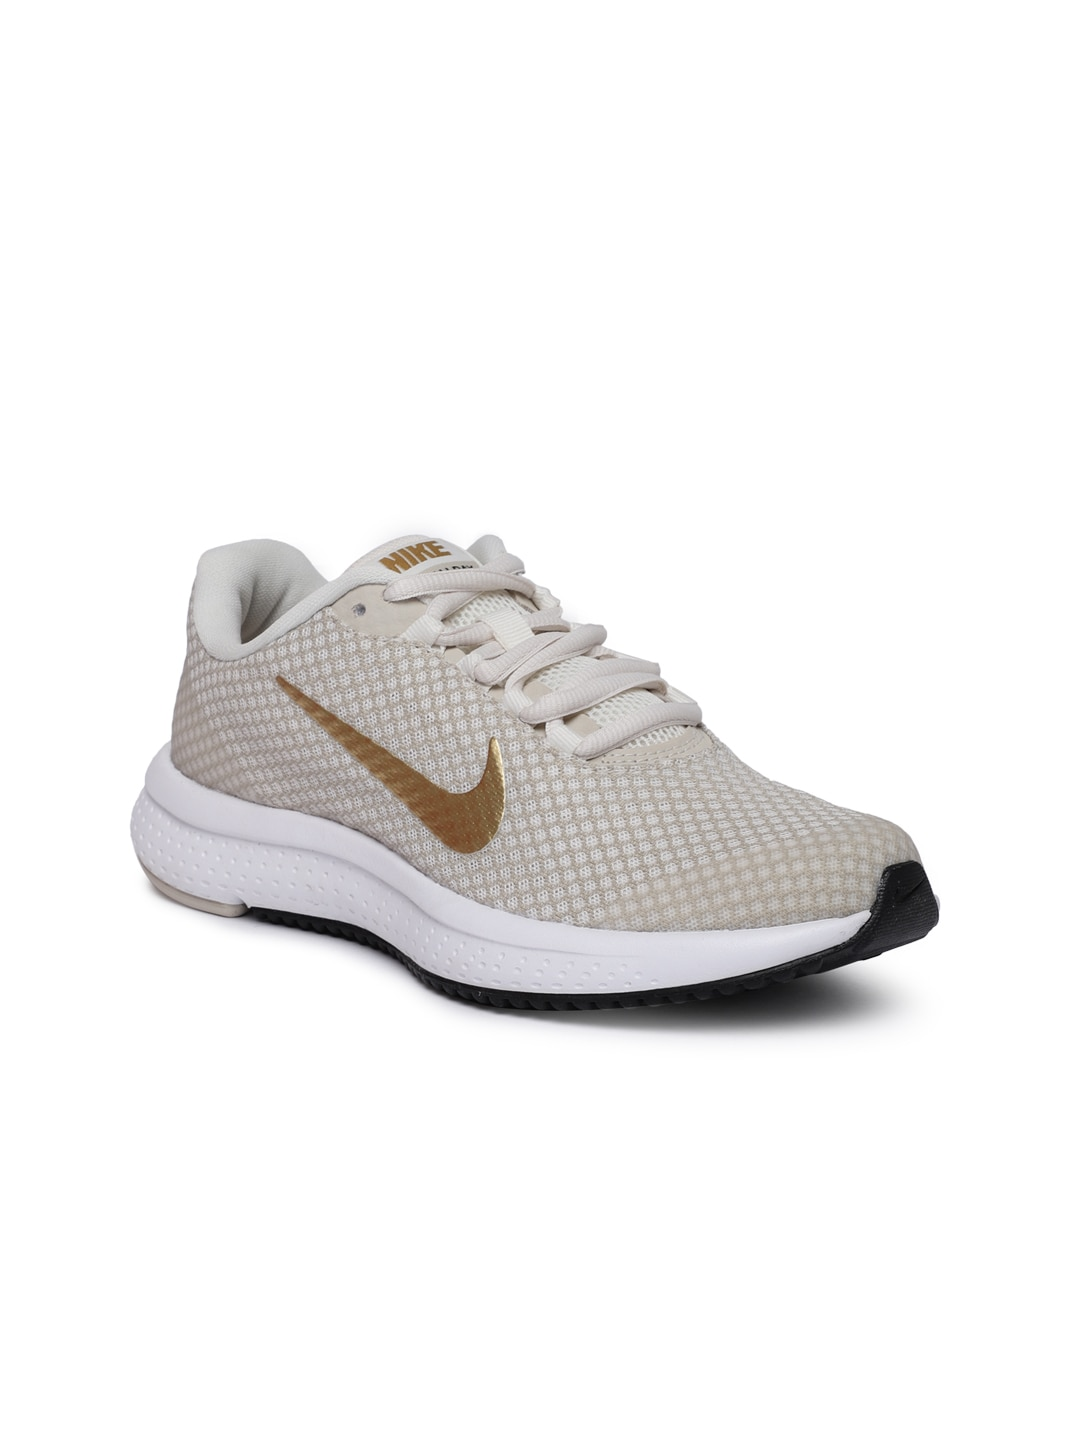 d55ca5adbd7 Womens Nike | Buy Nike Clothing & Accessories for Women Online in India at Best  Price